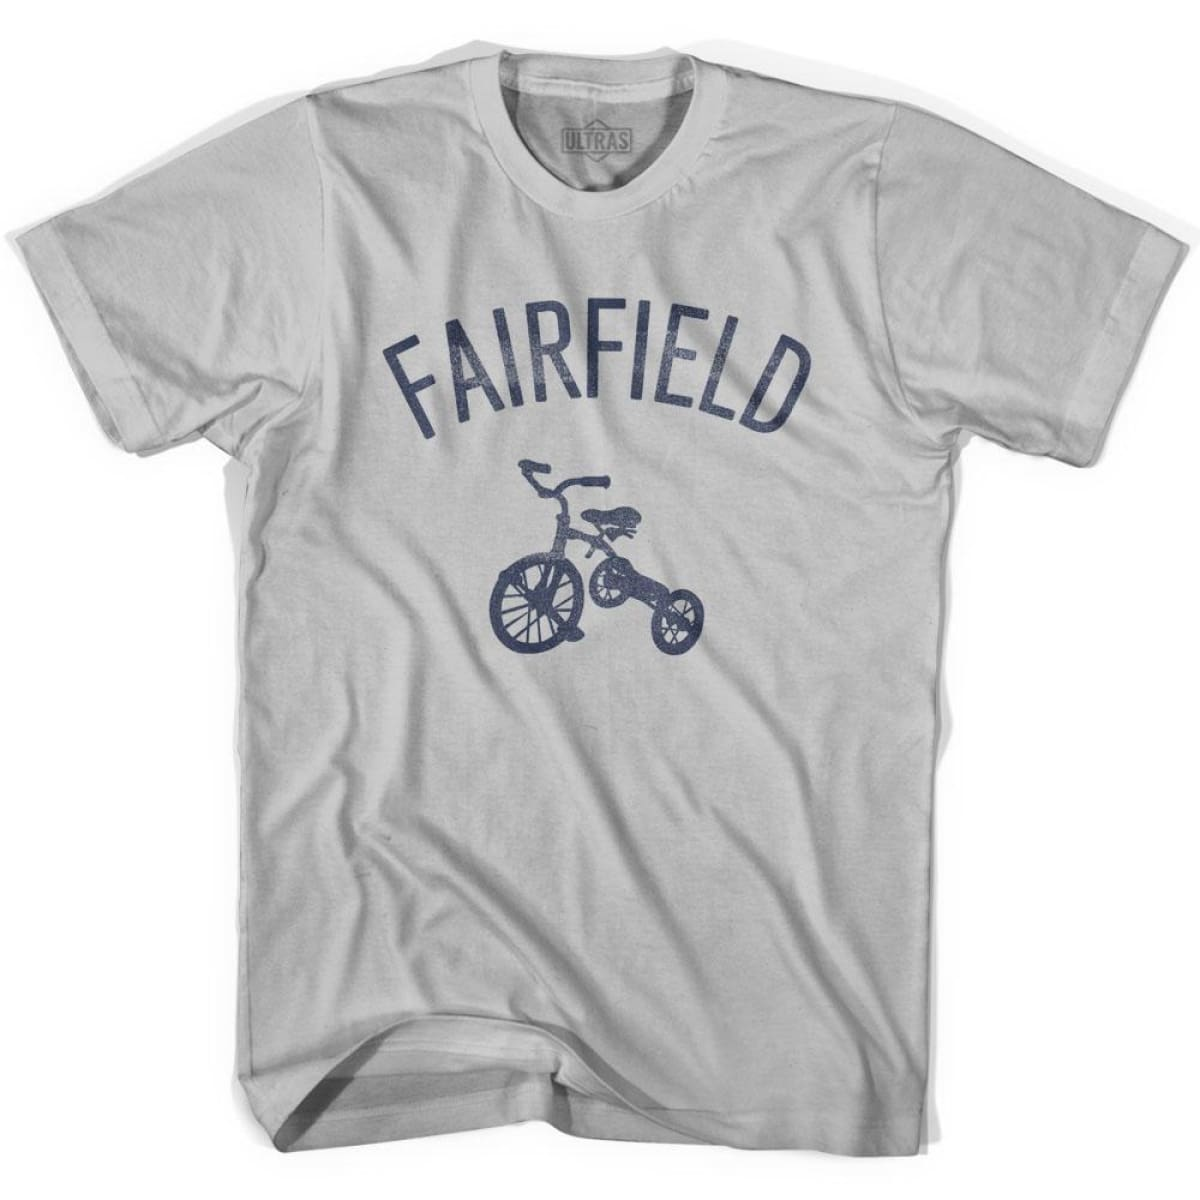 Fairfield City Tricycle Adult Cotton T-shirt - Tricycle City